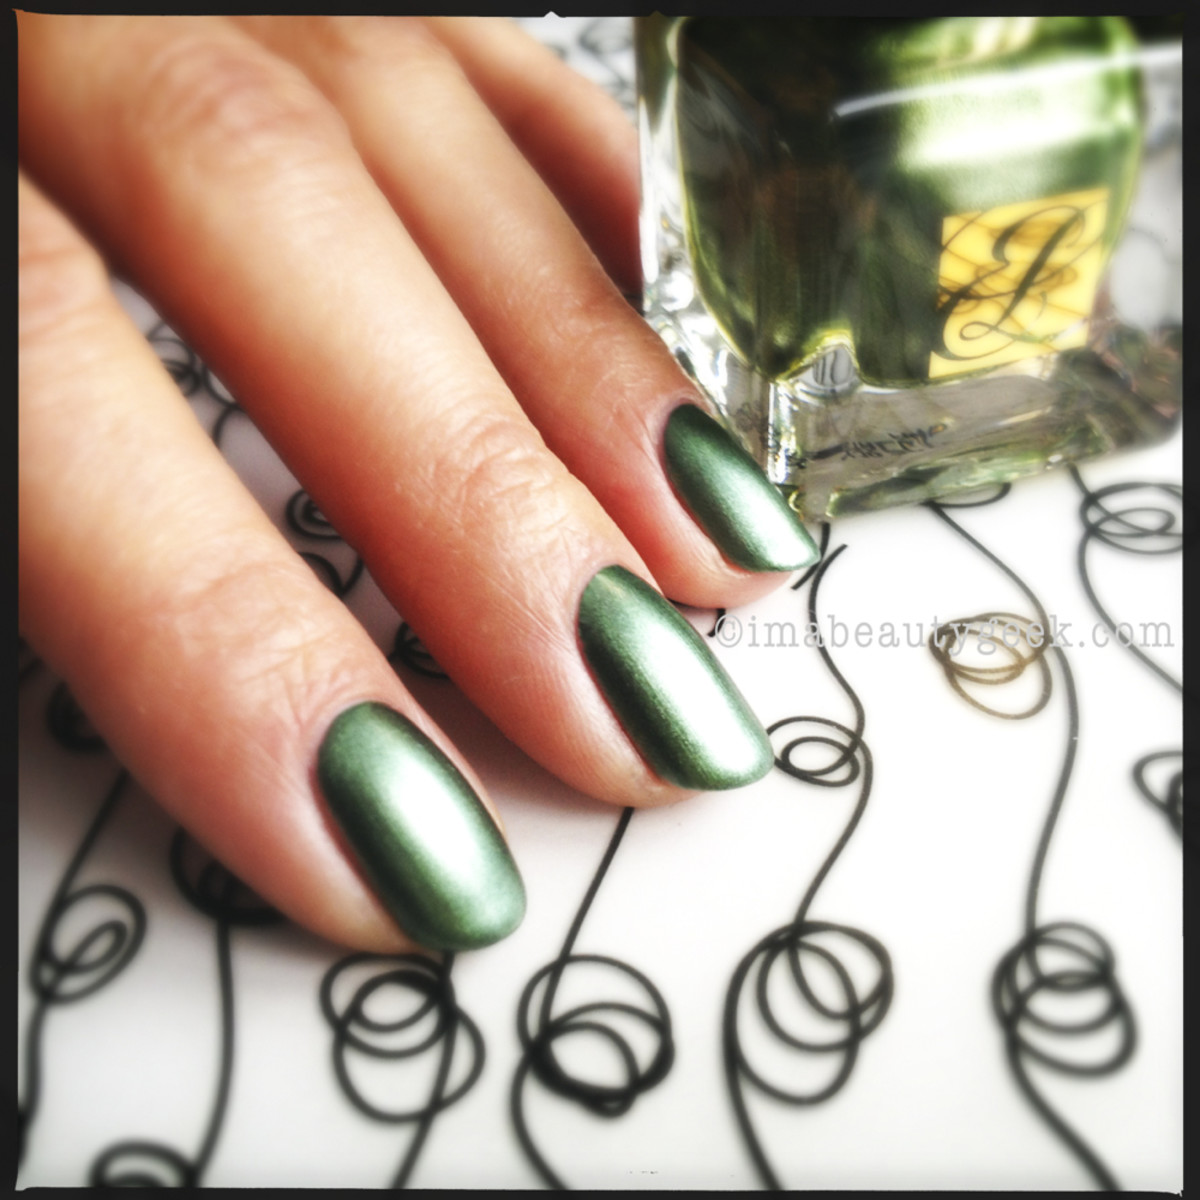 Estee Lauder Metallic Green Metallics Collection 2013